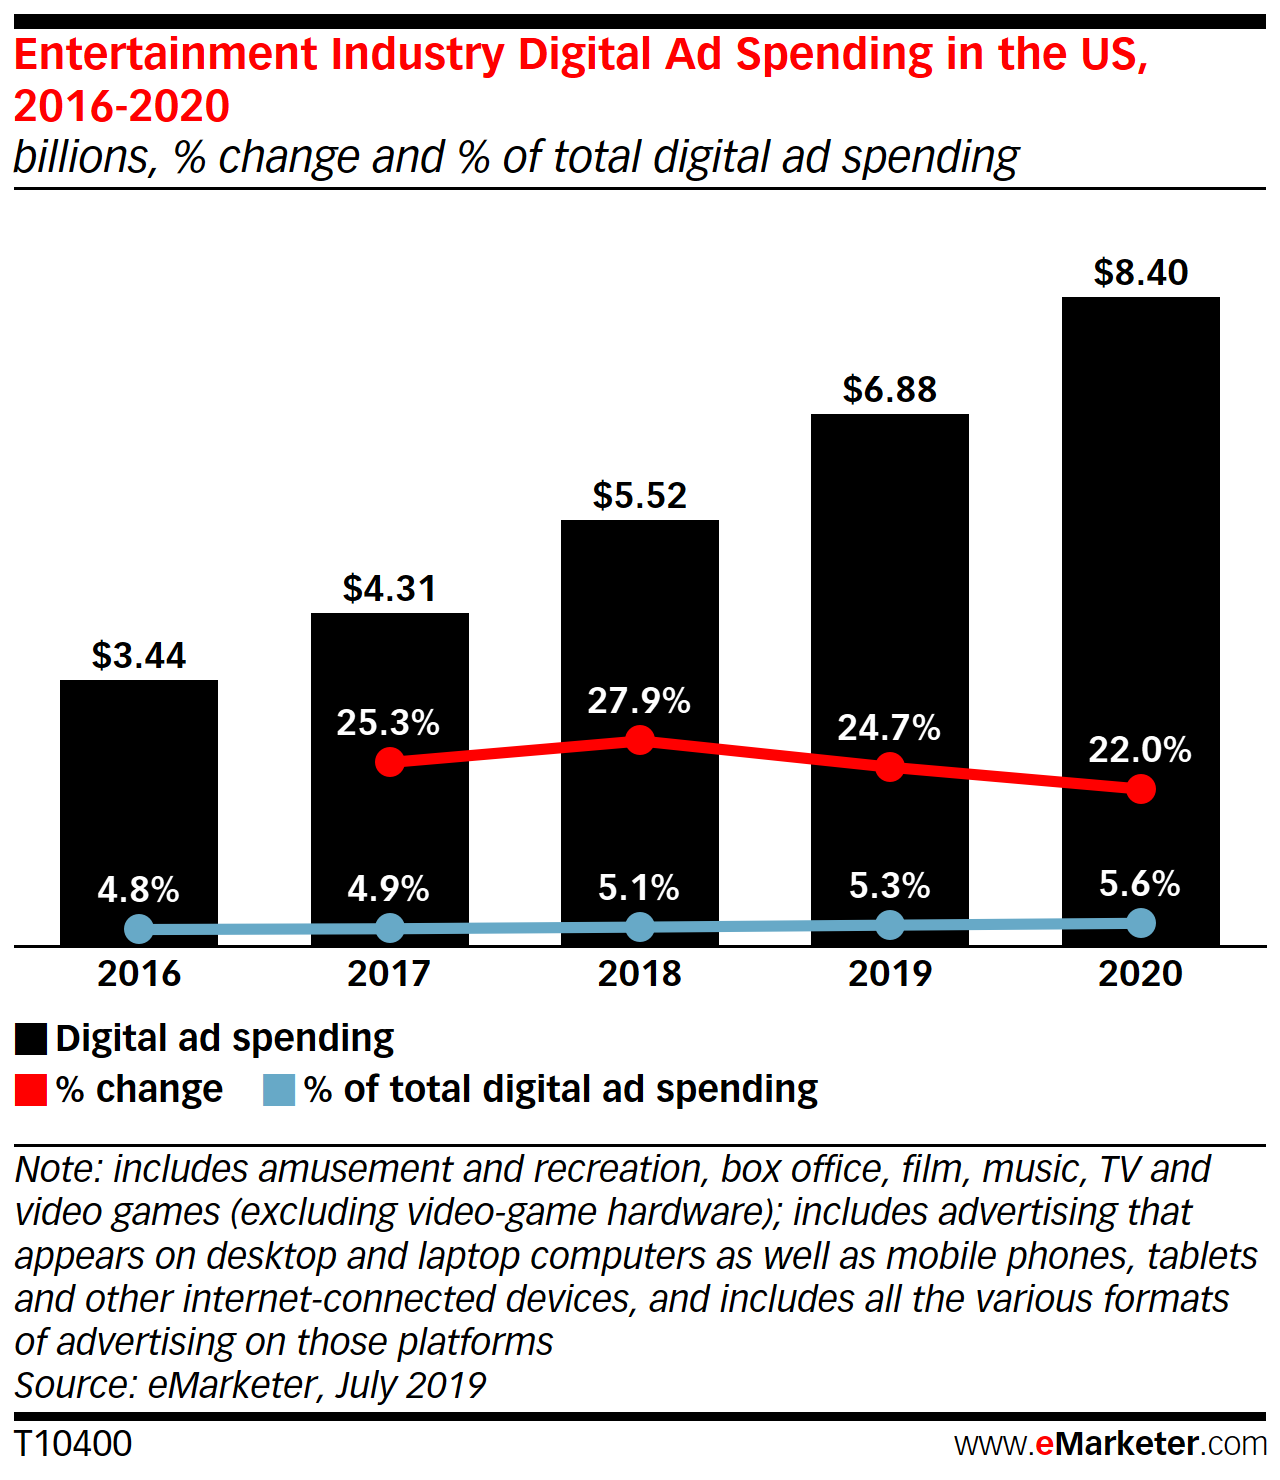 US Media and Entertainment Digital Ad Spending 2019 - eMarketer Trends, Forecasts & Statistics